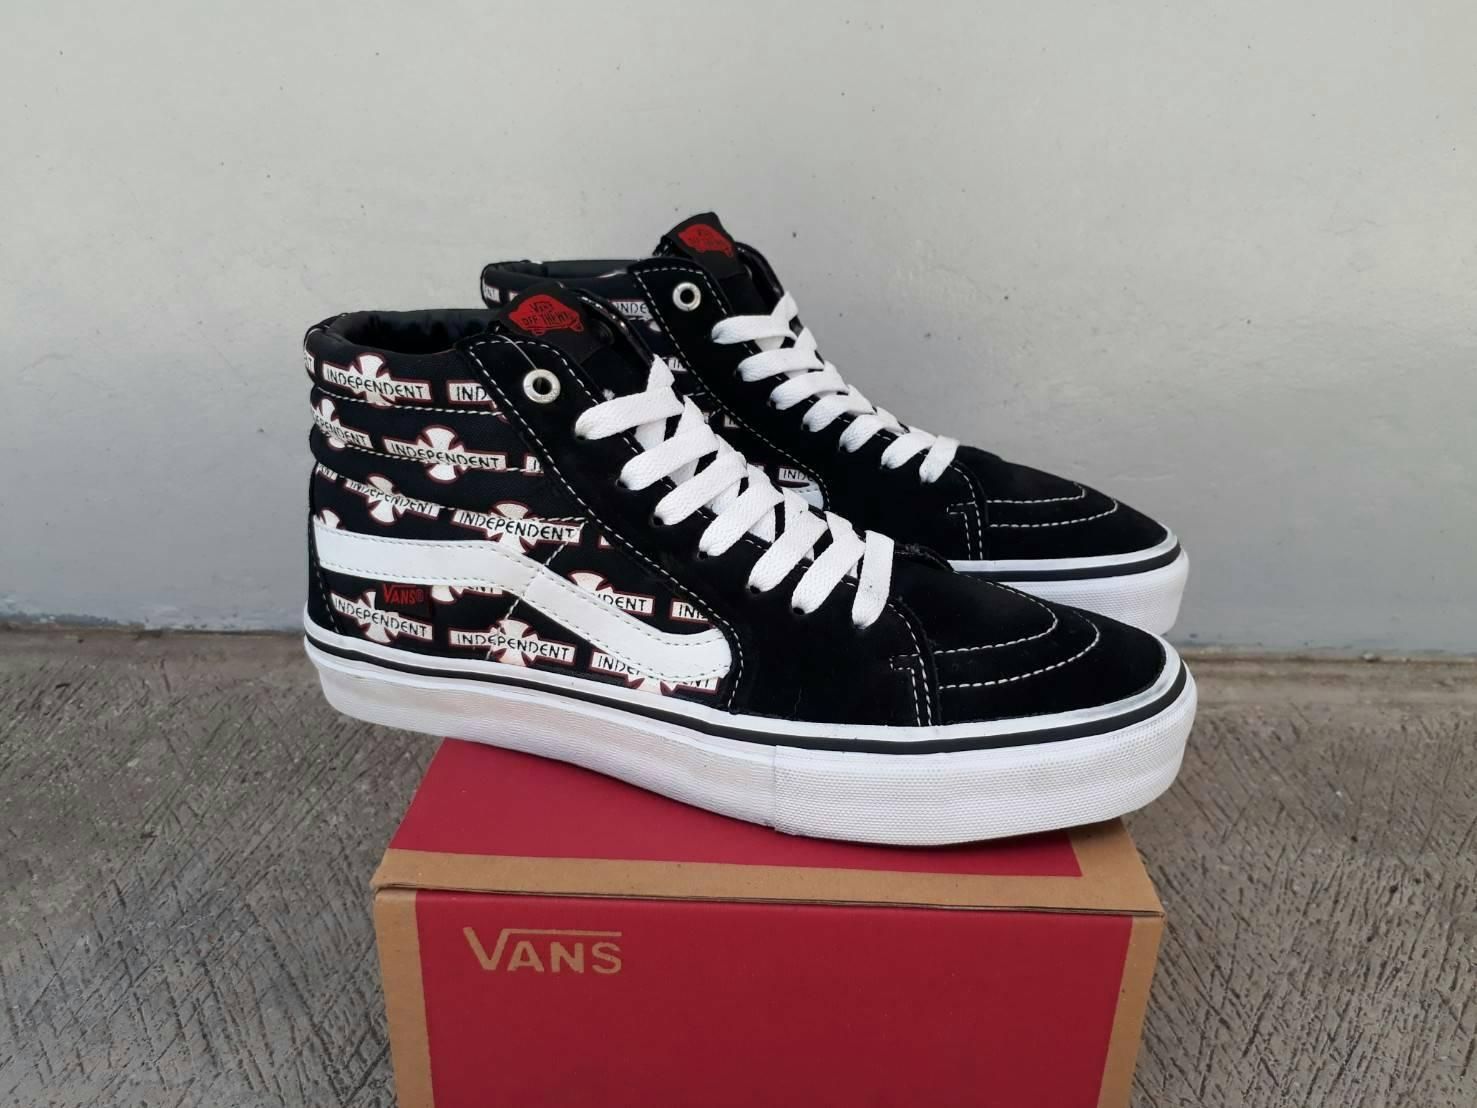 sepatu vans SK8 HI (INDEPENDENT) Black waffle DT premium BNIB made in china